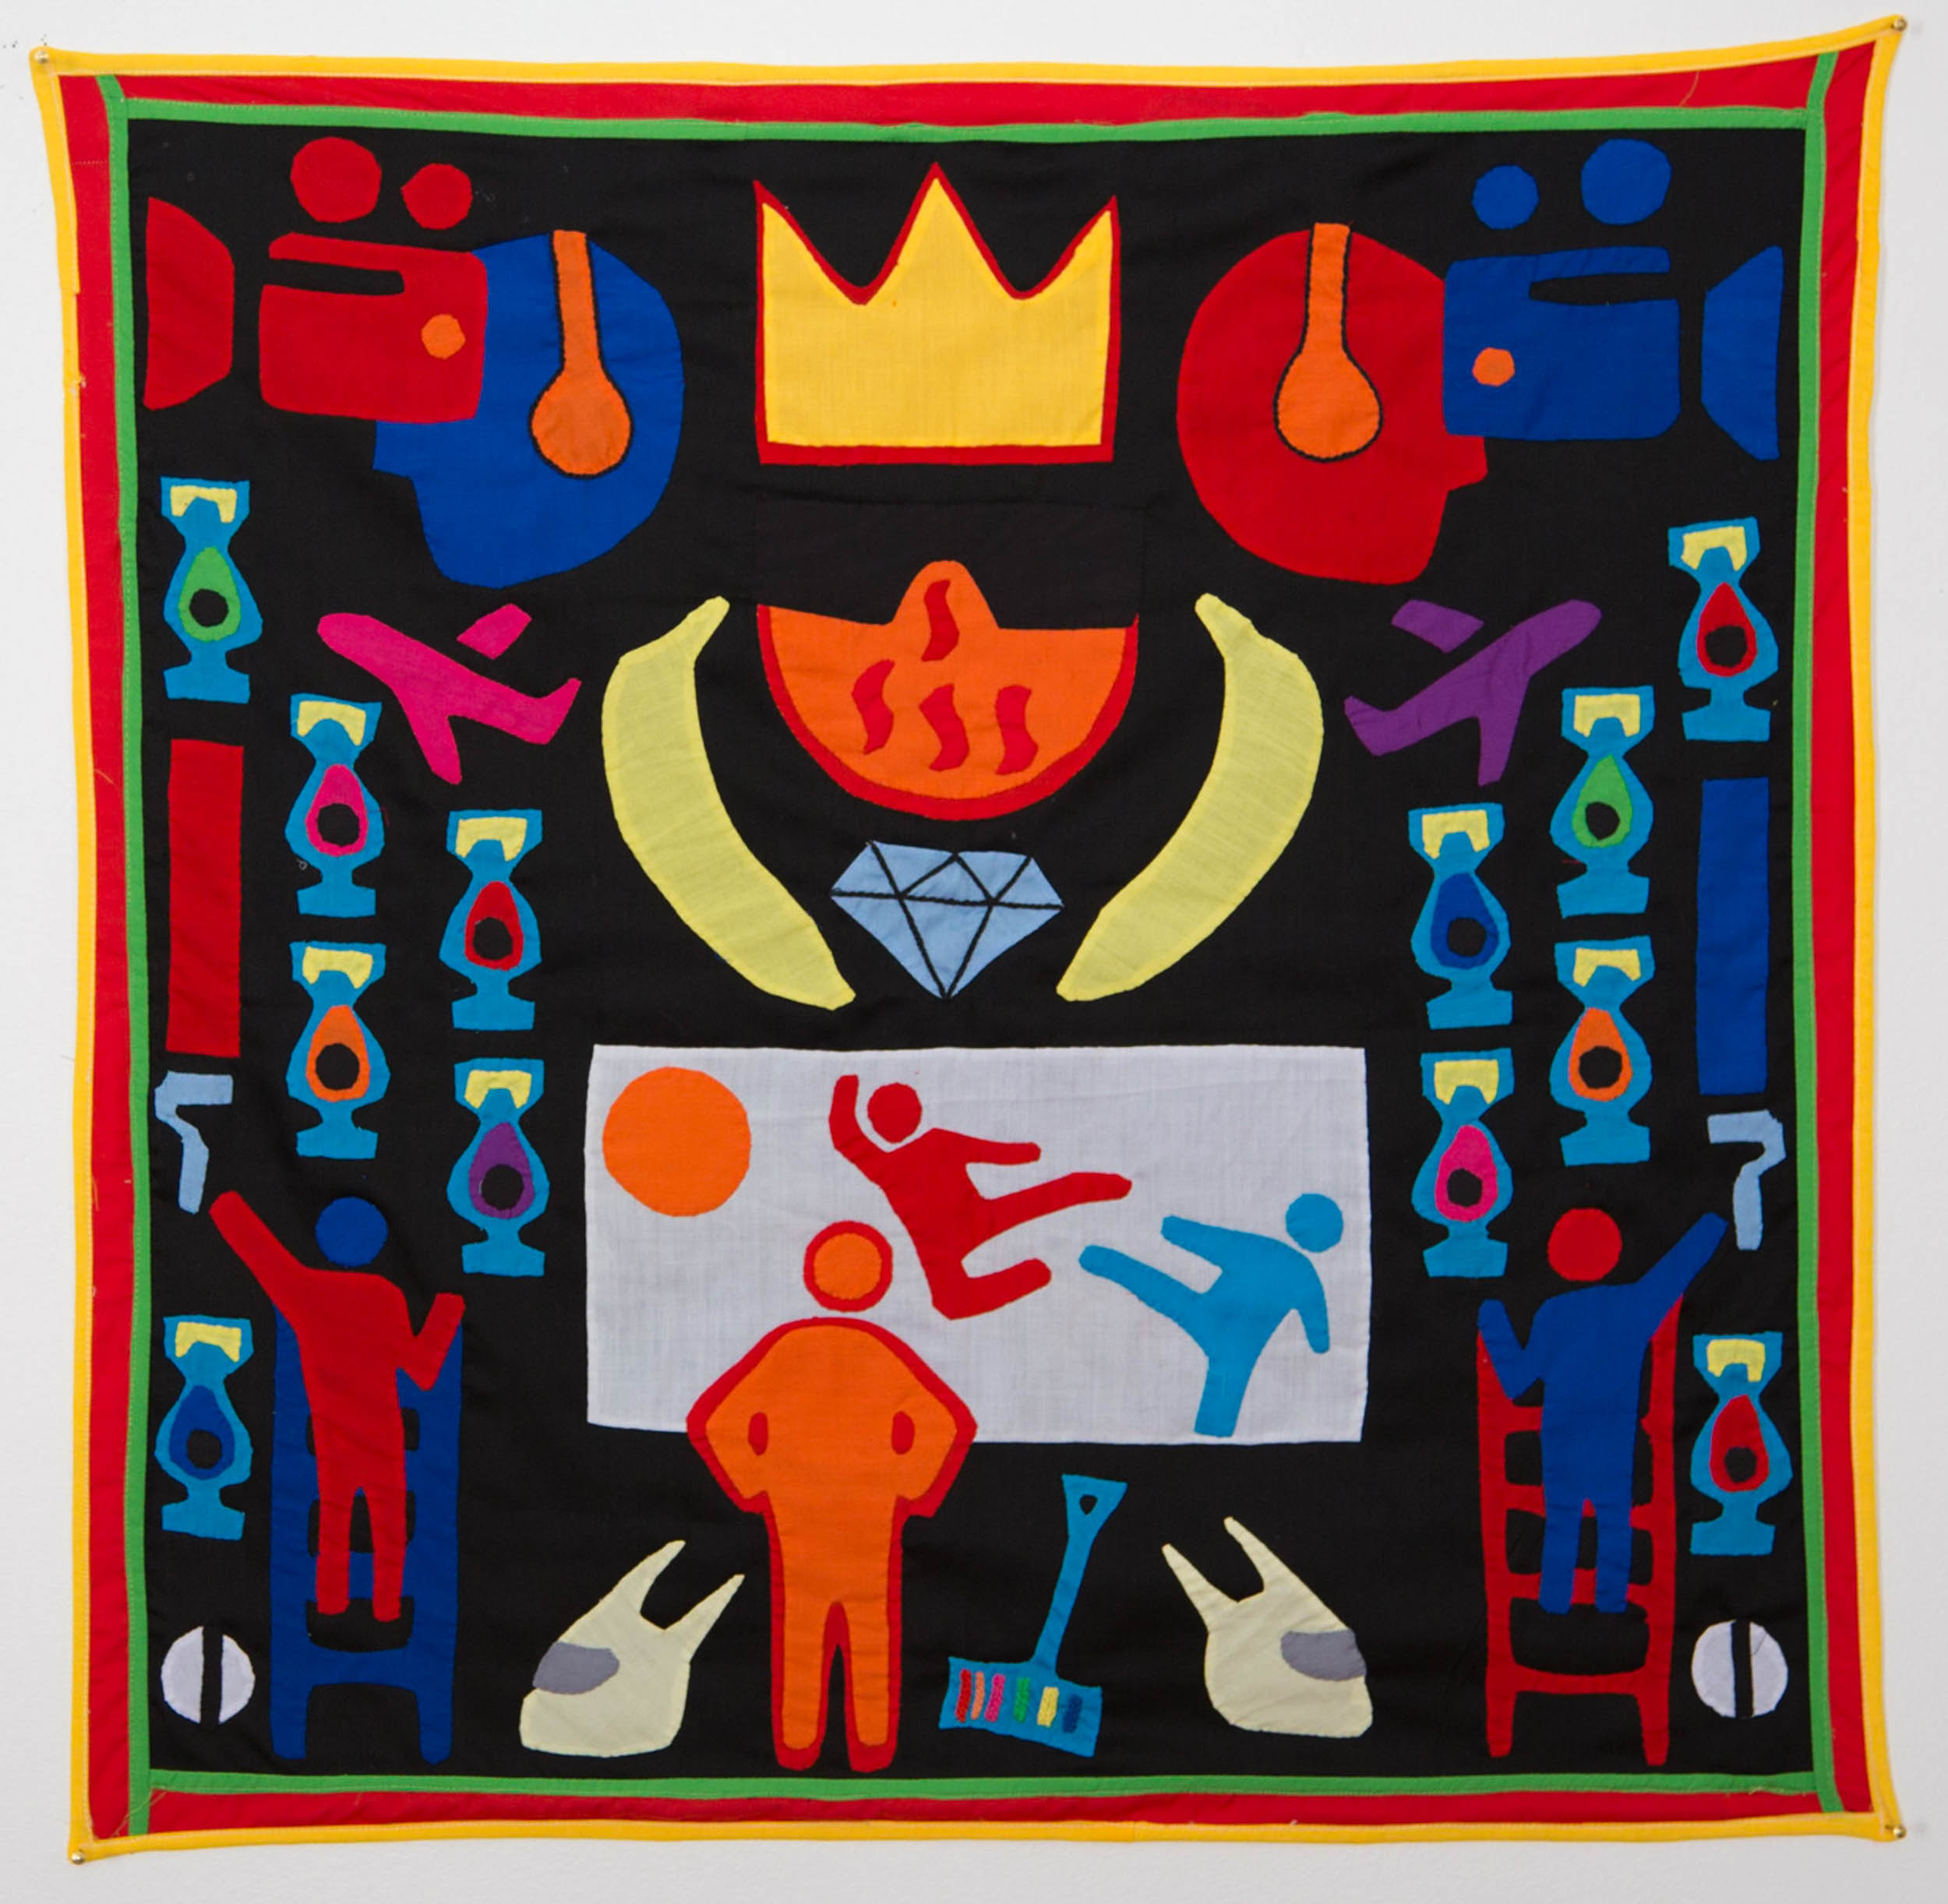 For the crown shall rest on your head, or your head on the     crown   ,  2015  Textile, NFC tags Dimensions: 120 x 120 cm